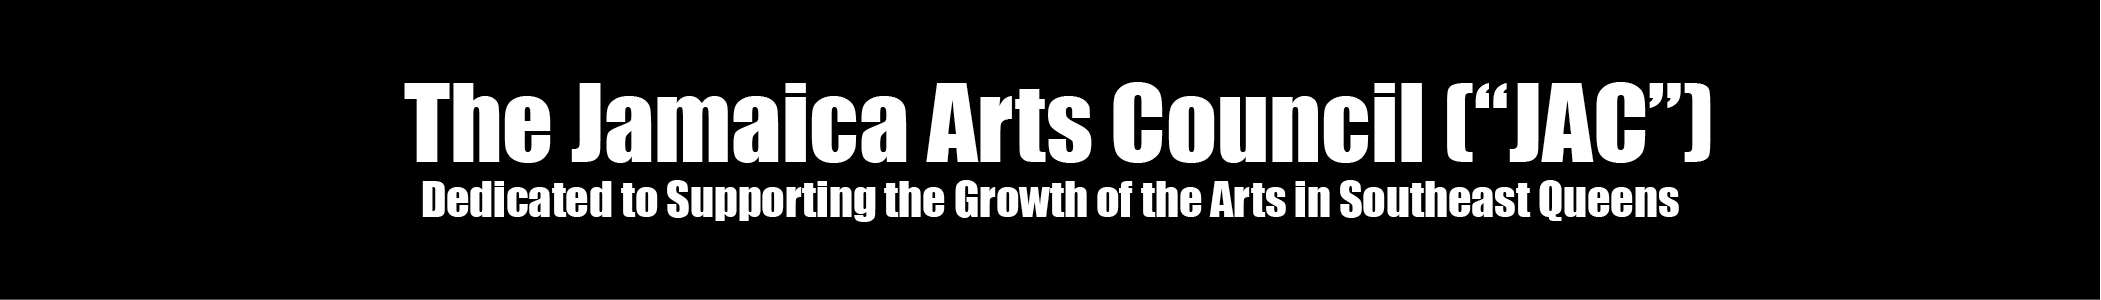 The Jamaica Arts Council